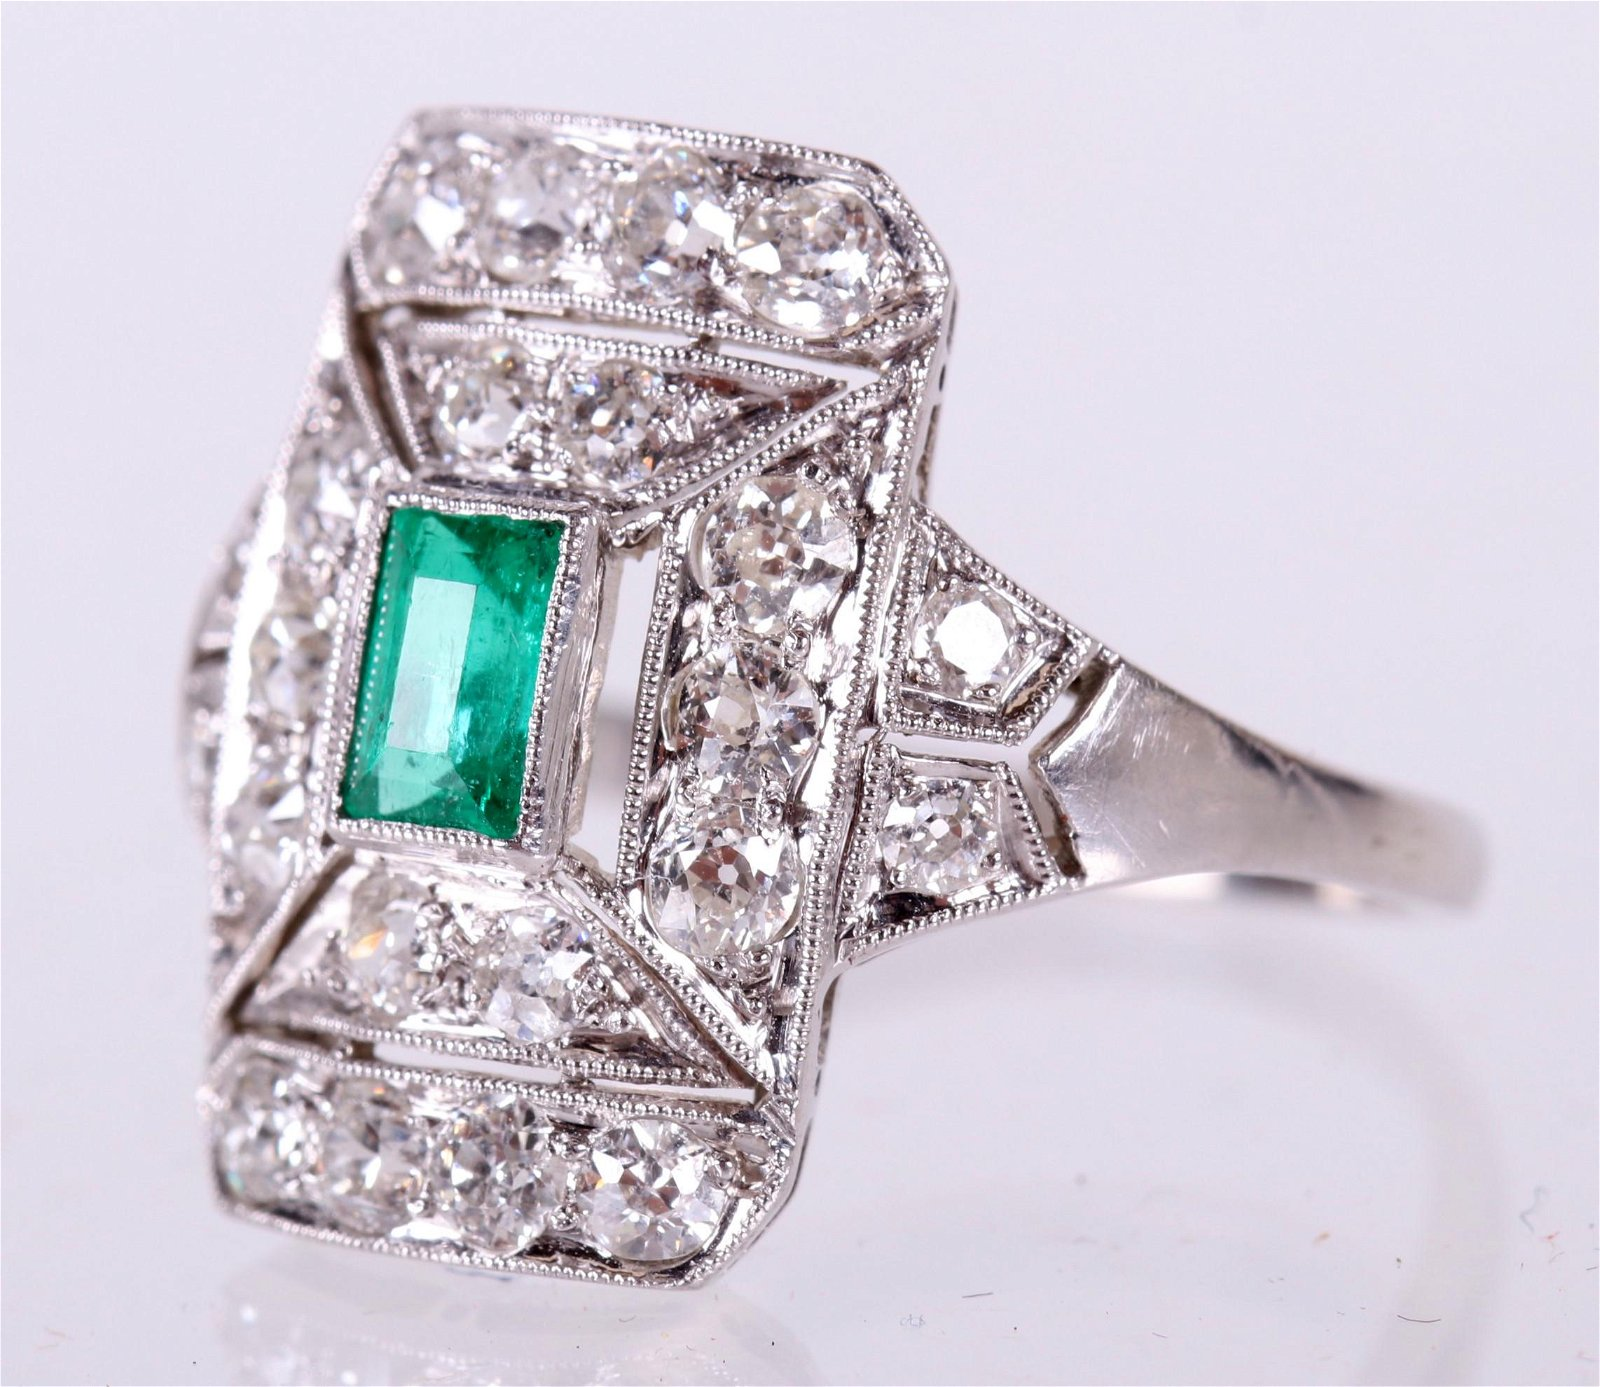 A Platinum, Diamond and Emerald Ring